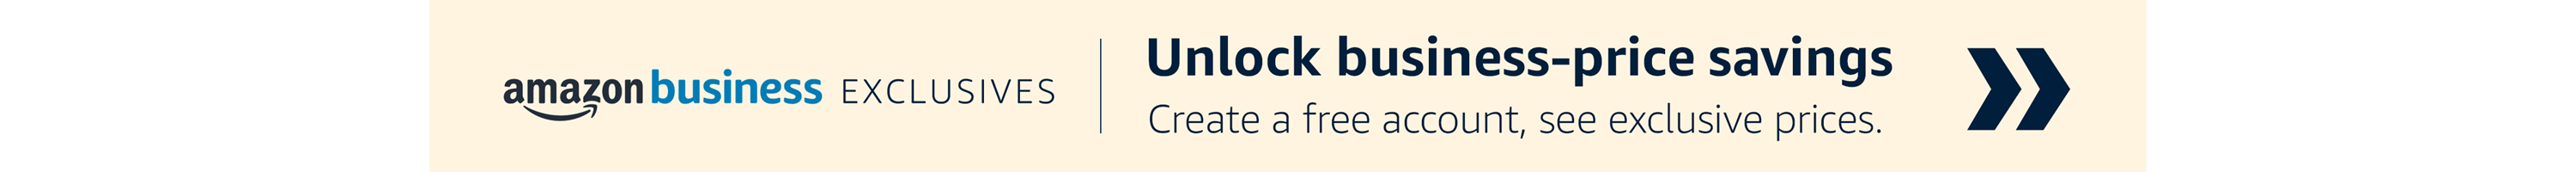 Unlock business-price savings - Create a free account, see exclusive prices.